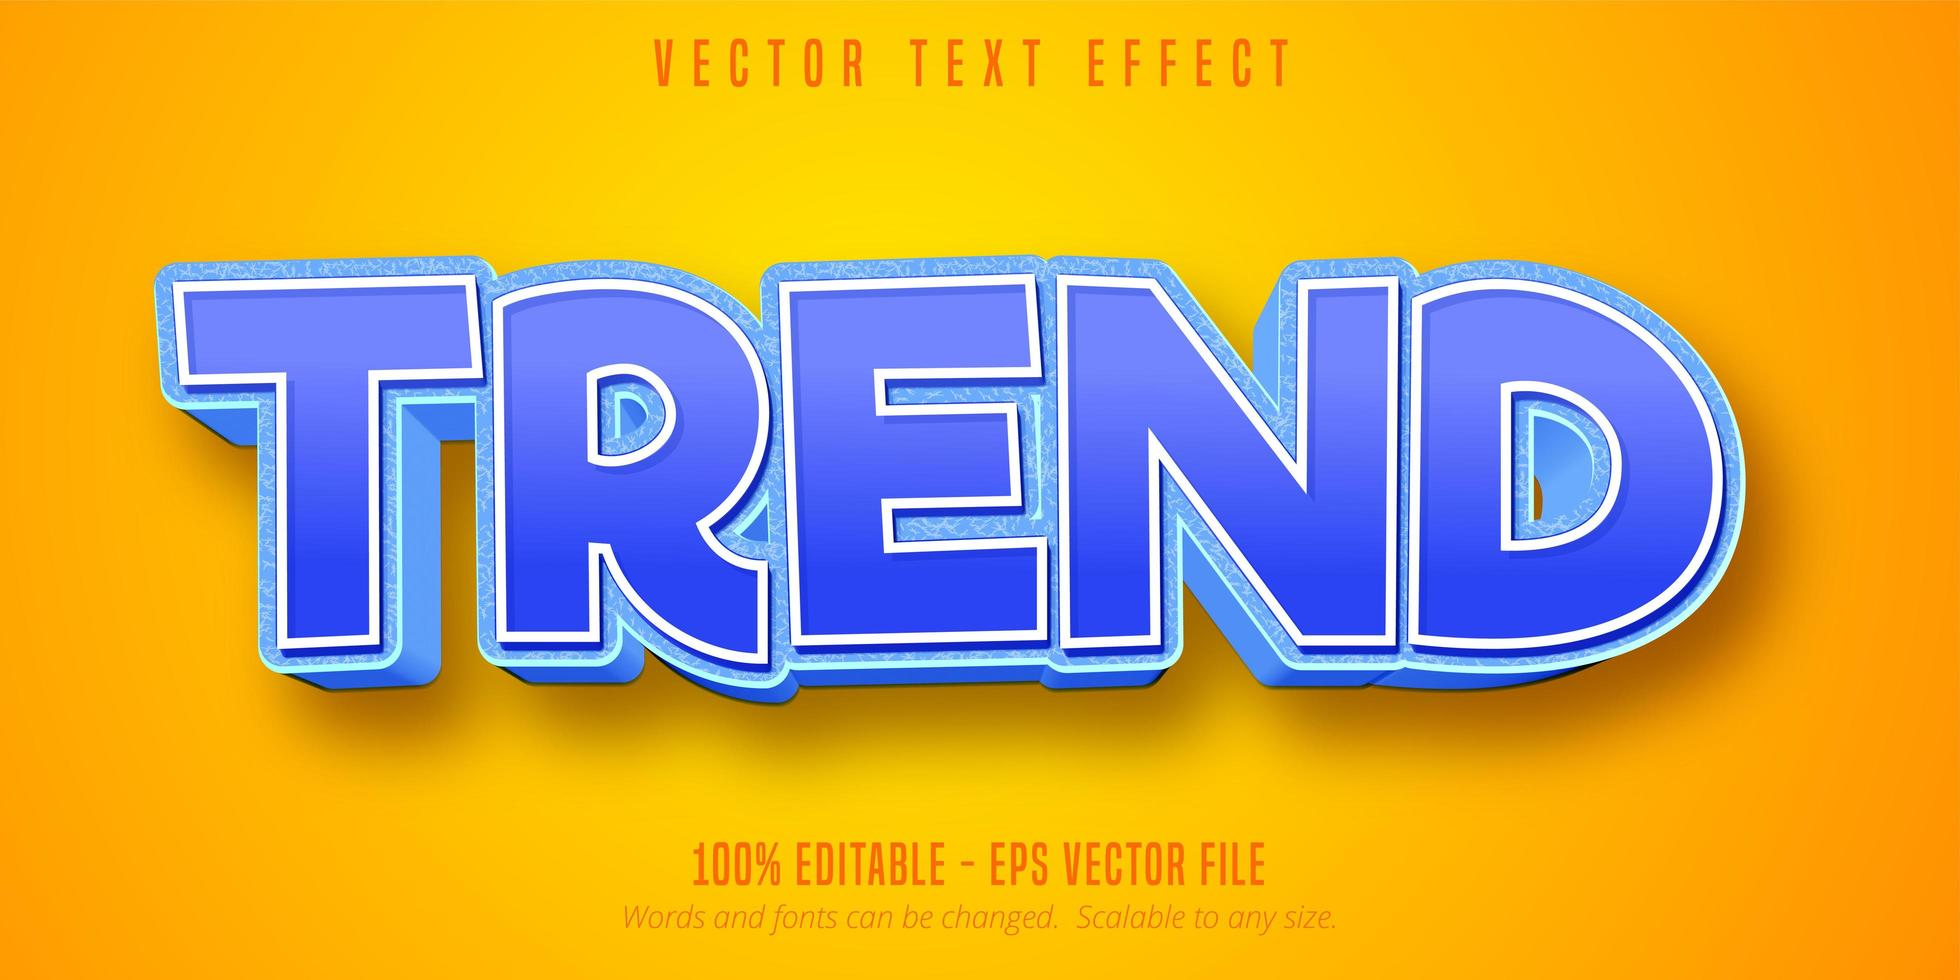 Blue, White Trend Text, Cartoon Style Text Effect vector